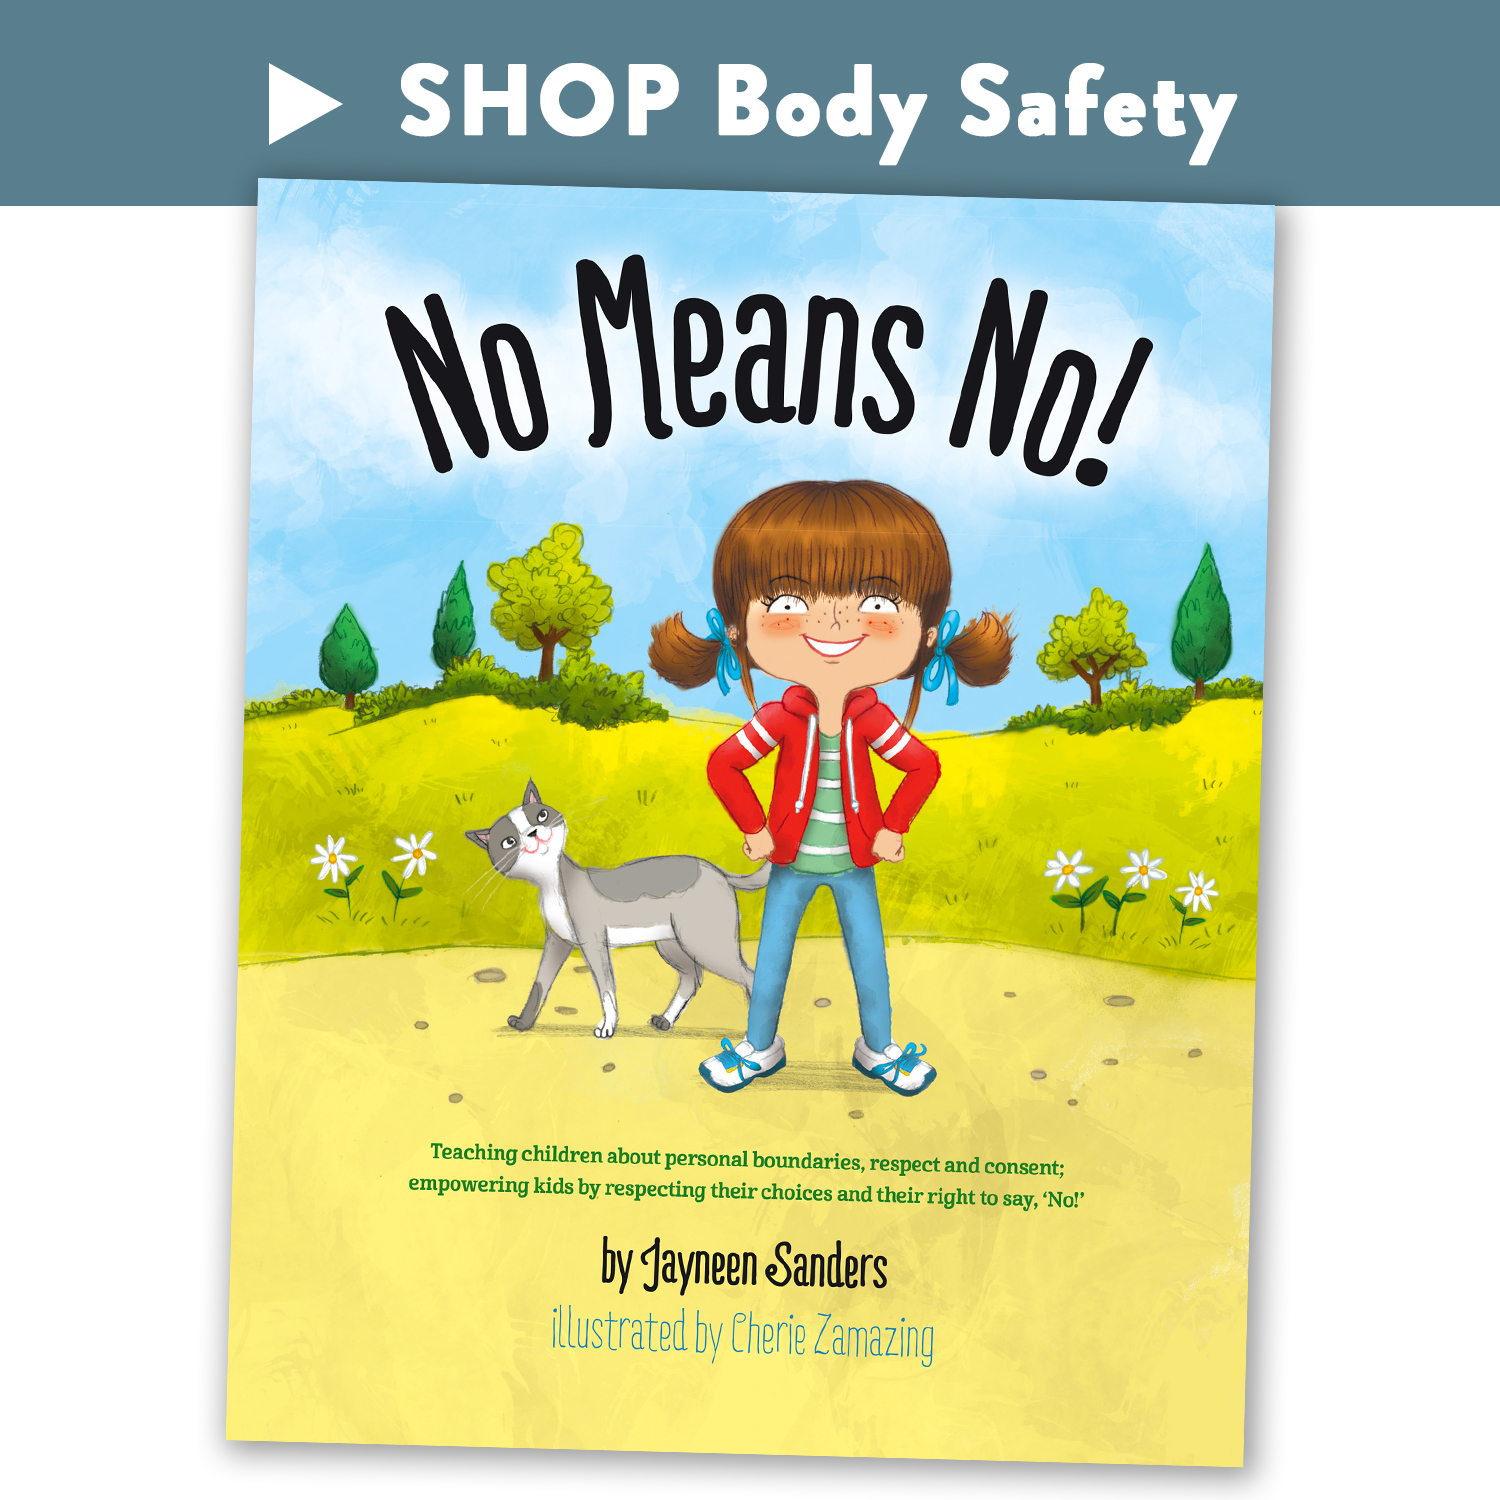 E2E_shop_BodySafety_4-NMN.jpg